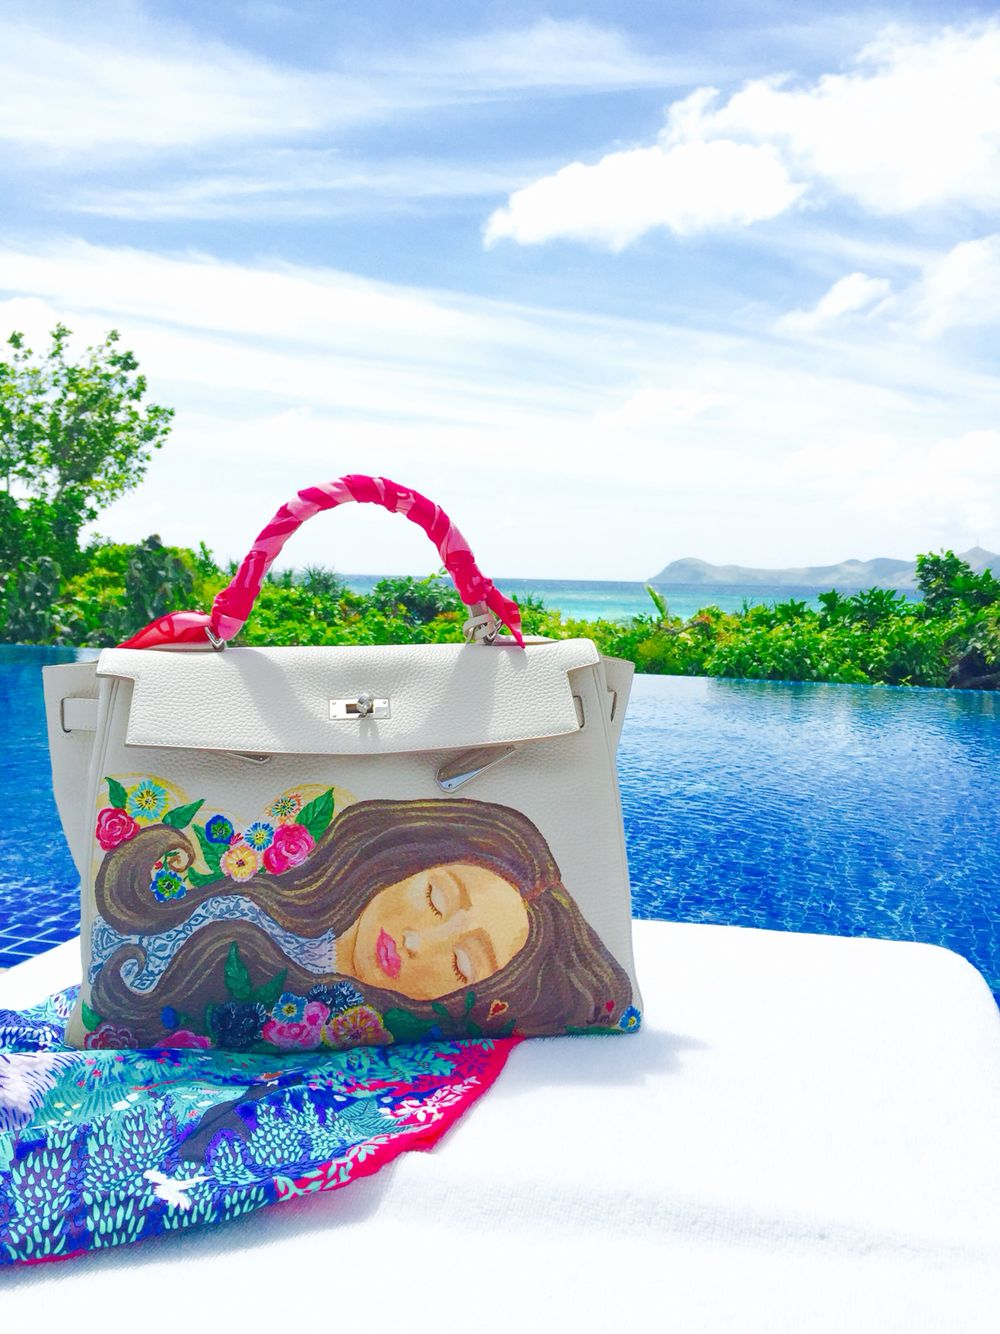 Love Marie hand painted Hermes Kelly | Painted leather bag